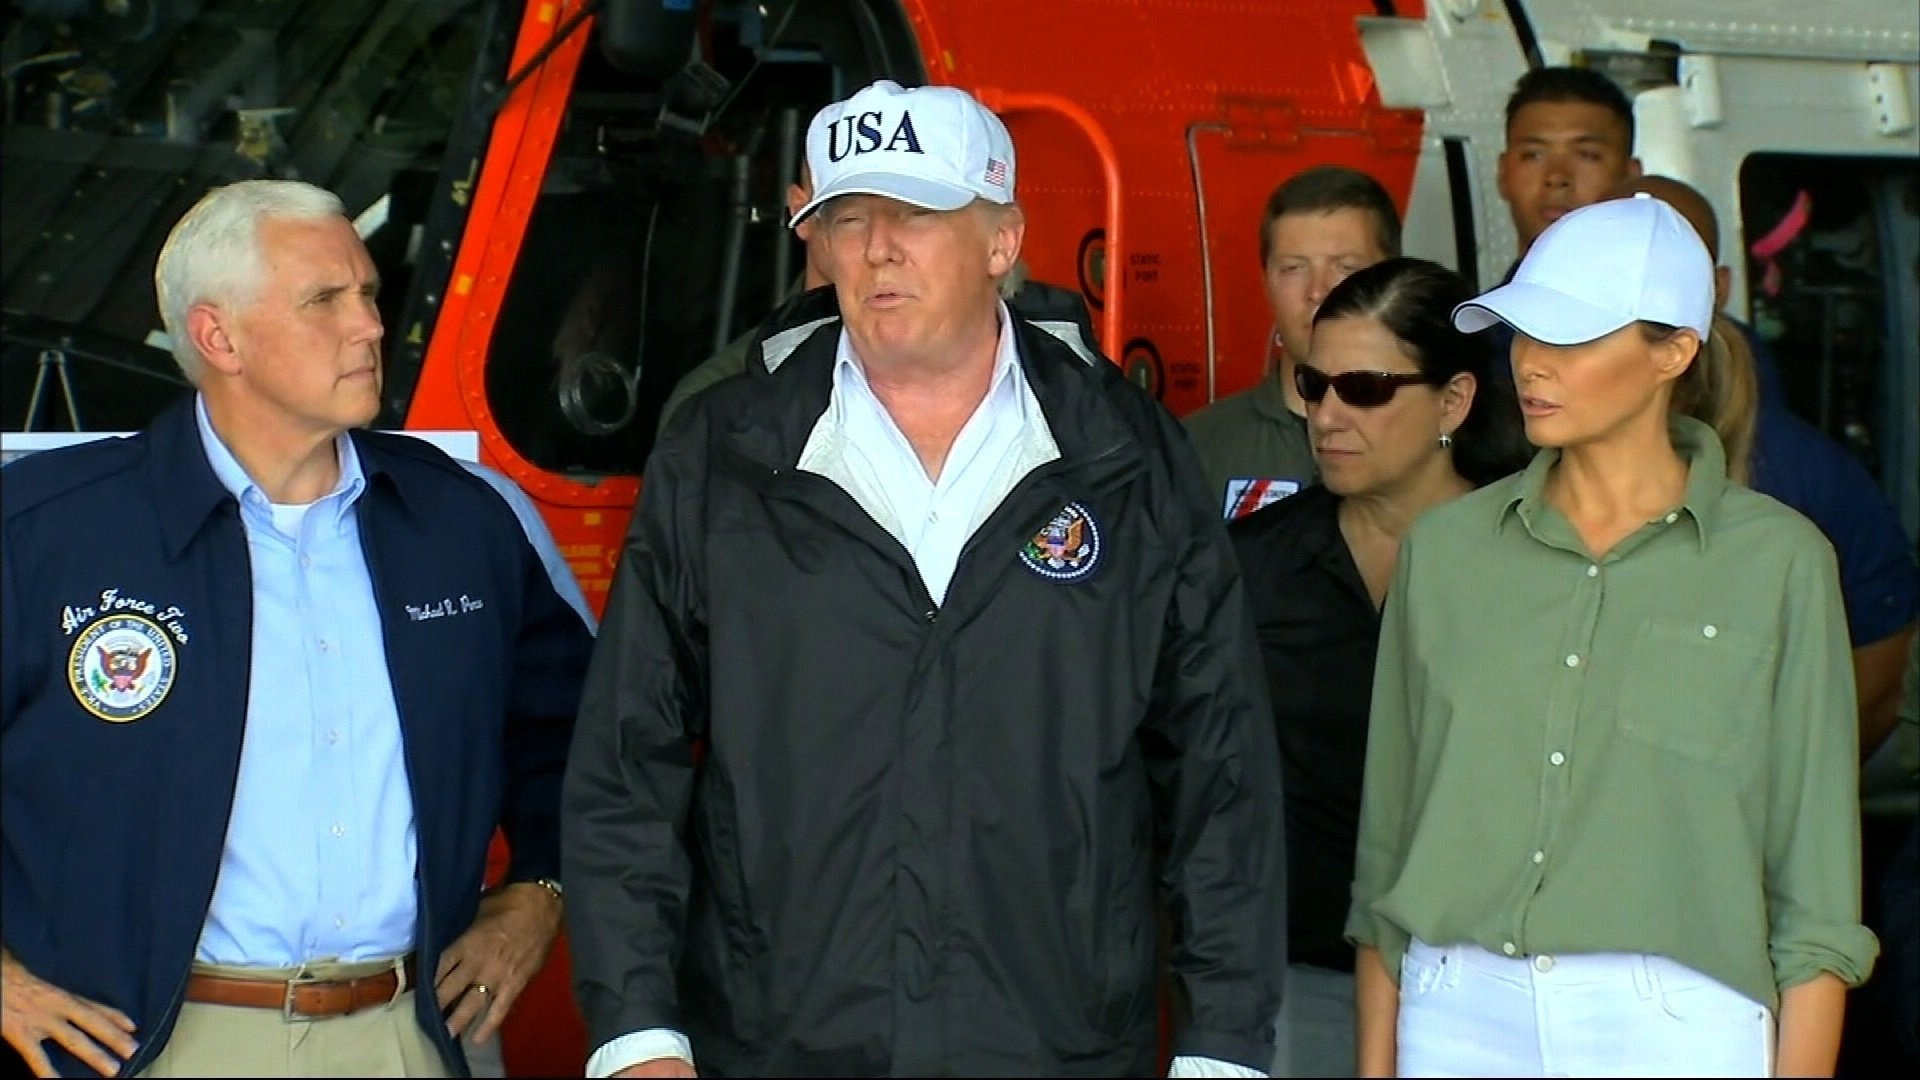 Hurricane Irma: Trump heads to Florida to see damage